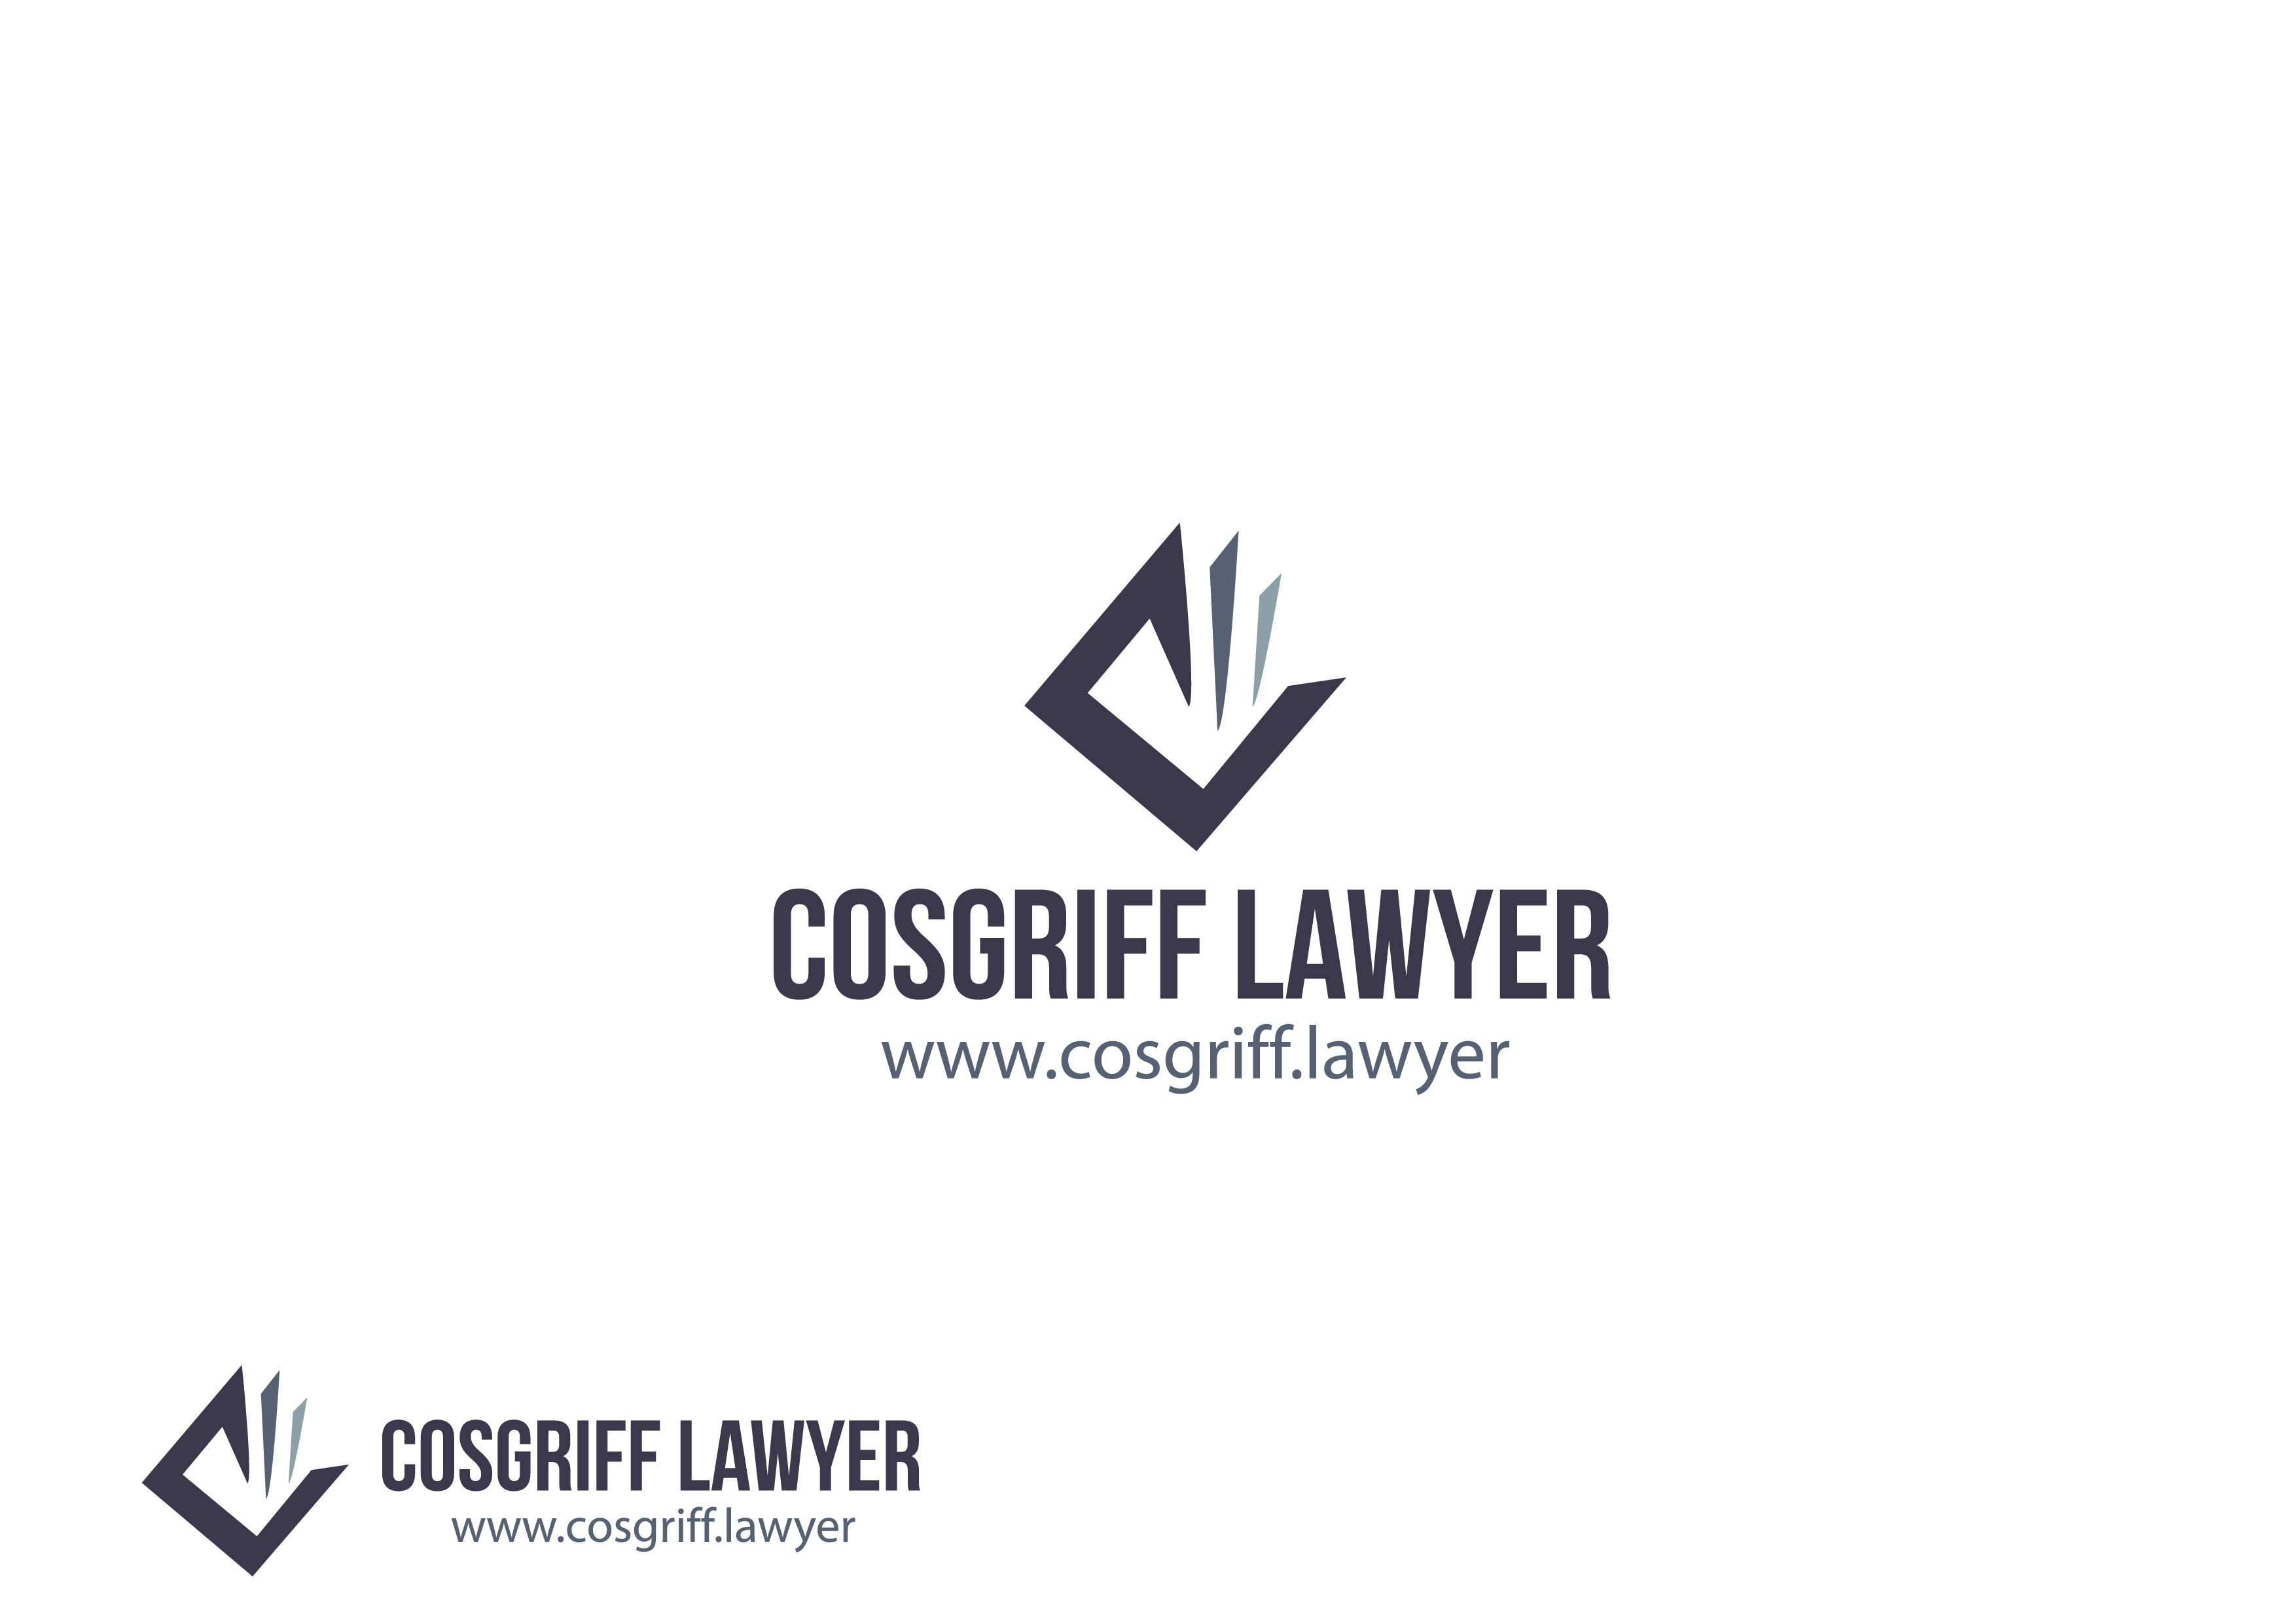 """""""Cosgriff Lawyer"""" need a sleek new logo corperate & I.D."""